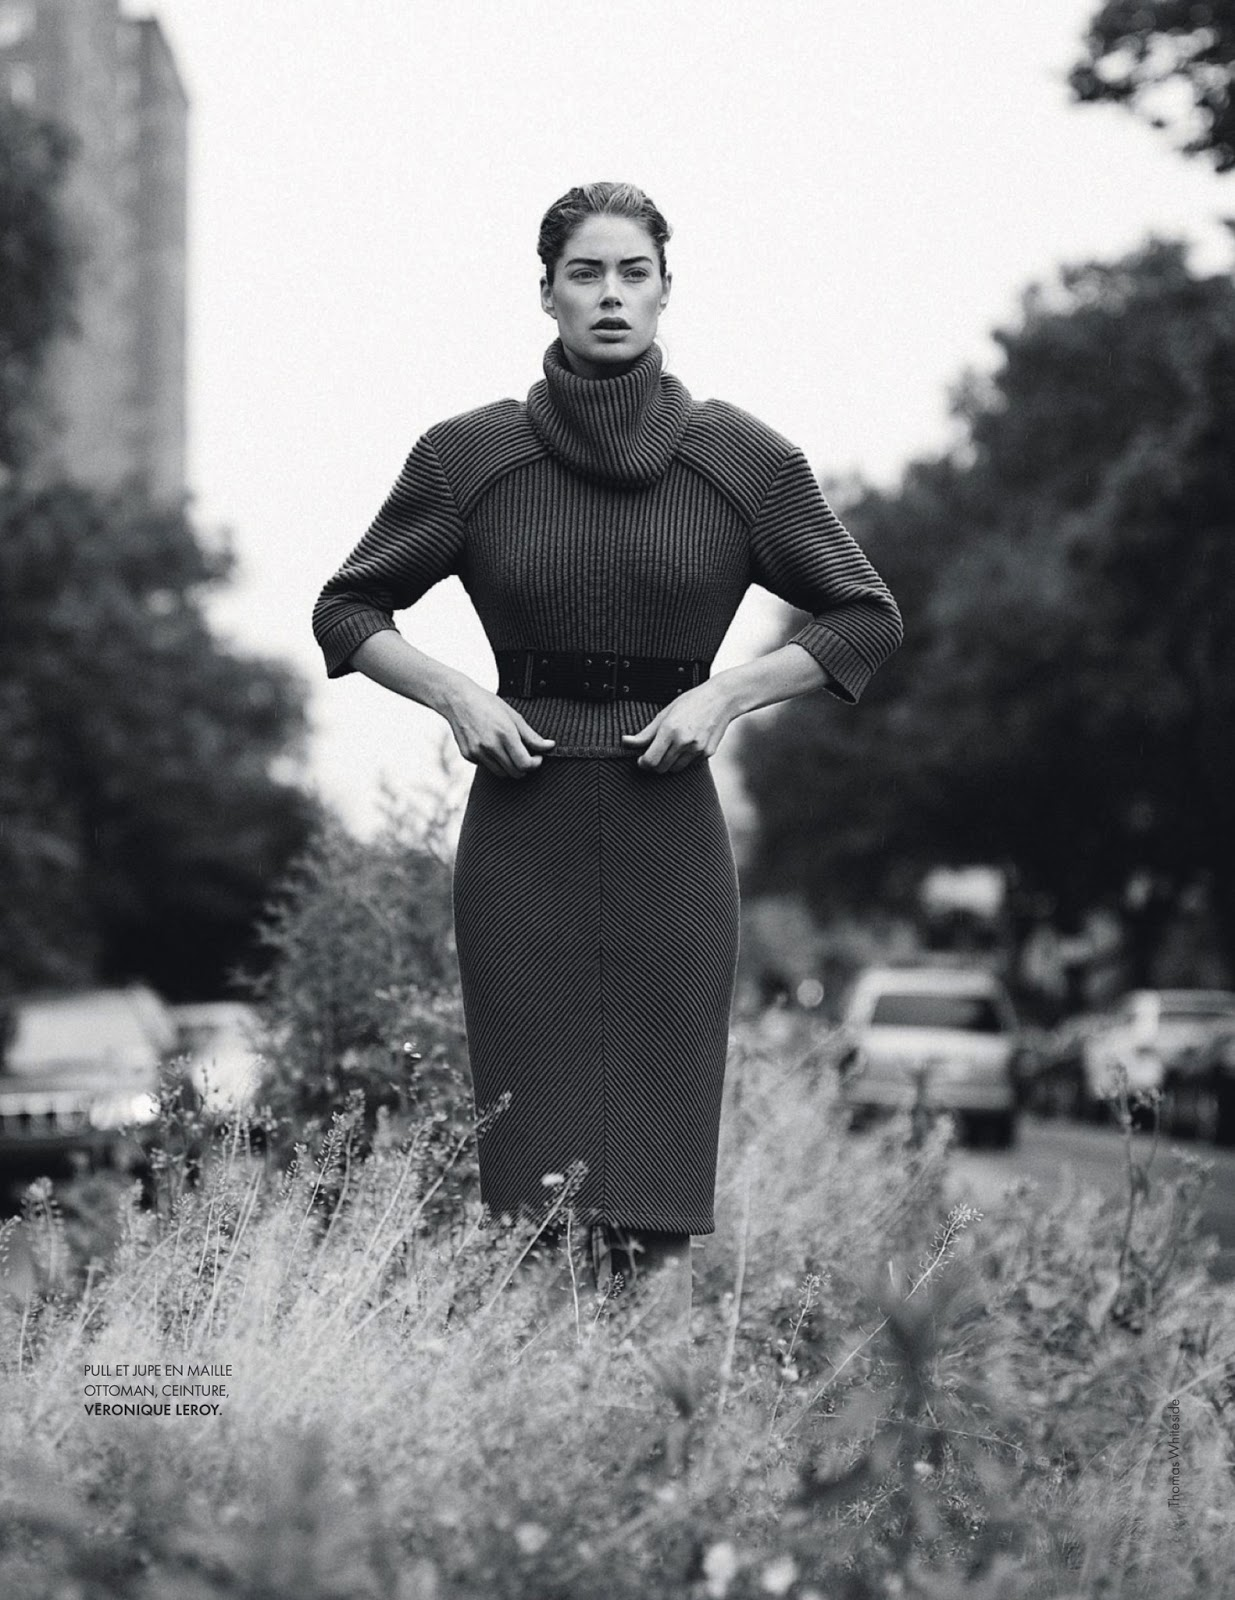 fashion_scans_remastered-doutzen_kroes-elle_france_2-issue_3531-scanned_by_vampirehorde-hq-9.jpg